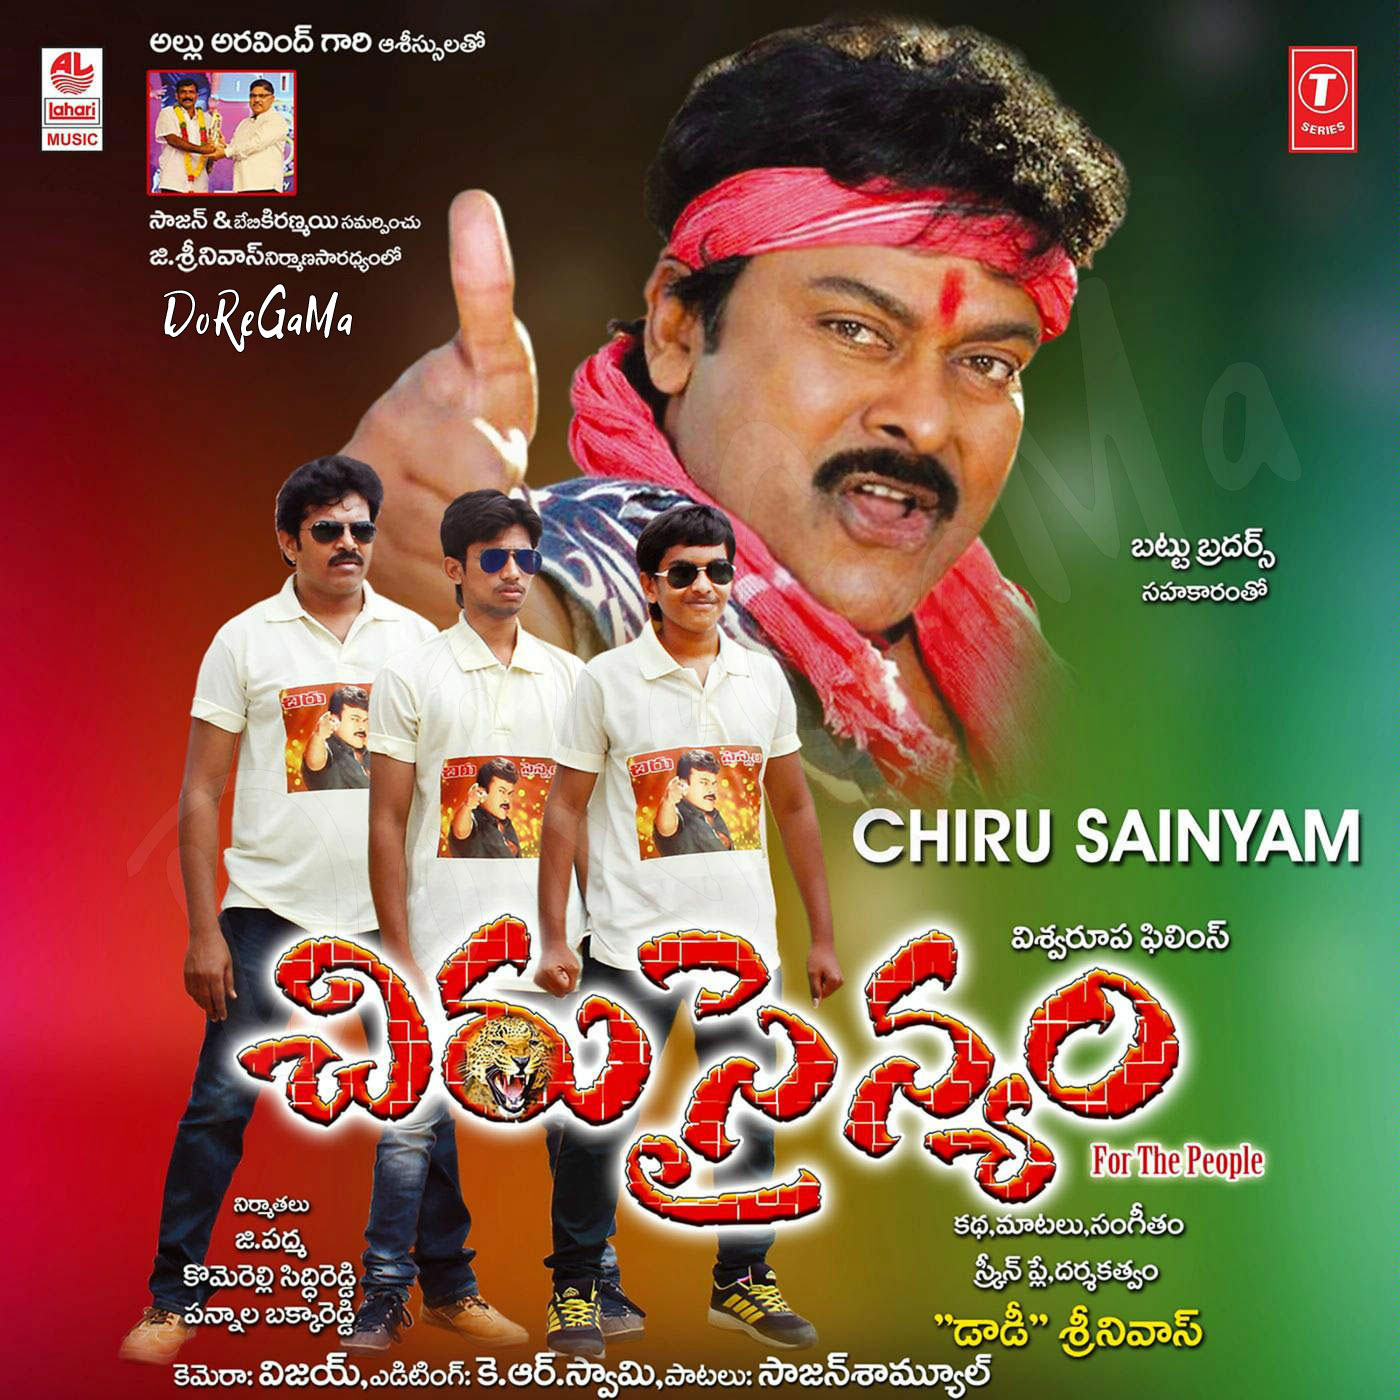 Chiru-Sainyam-2016-Original-CD-Front-Cover-Poster-Wallpaper-HD